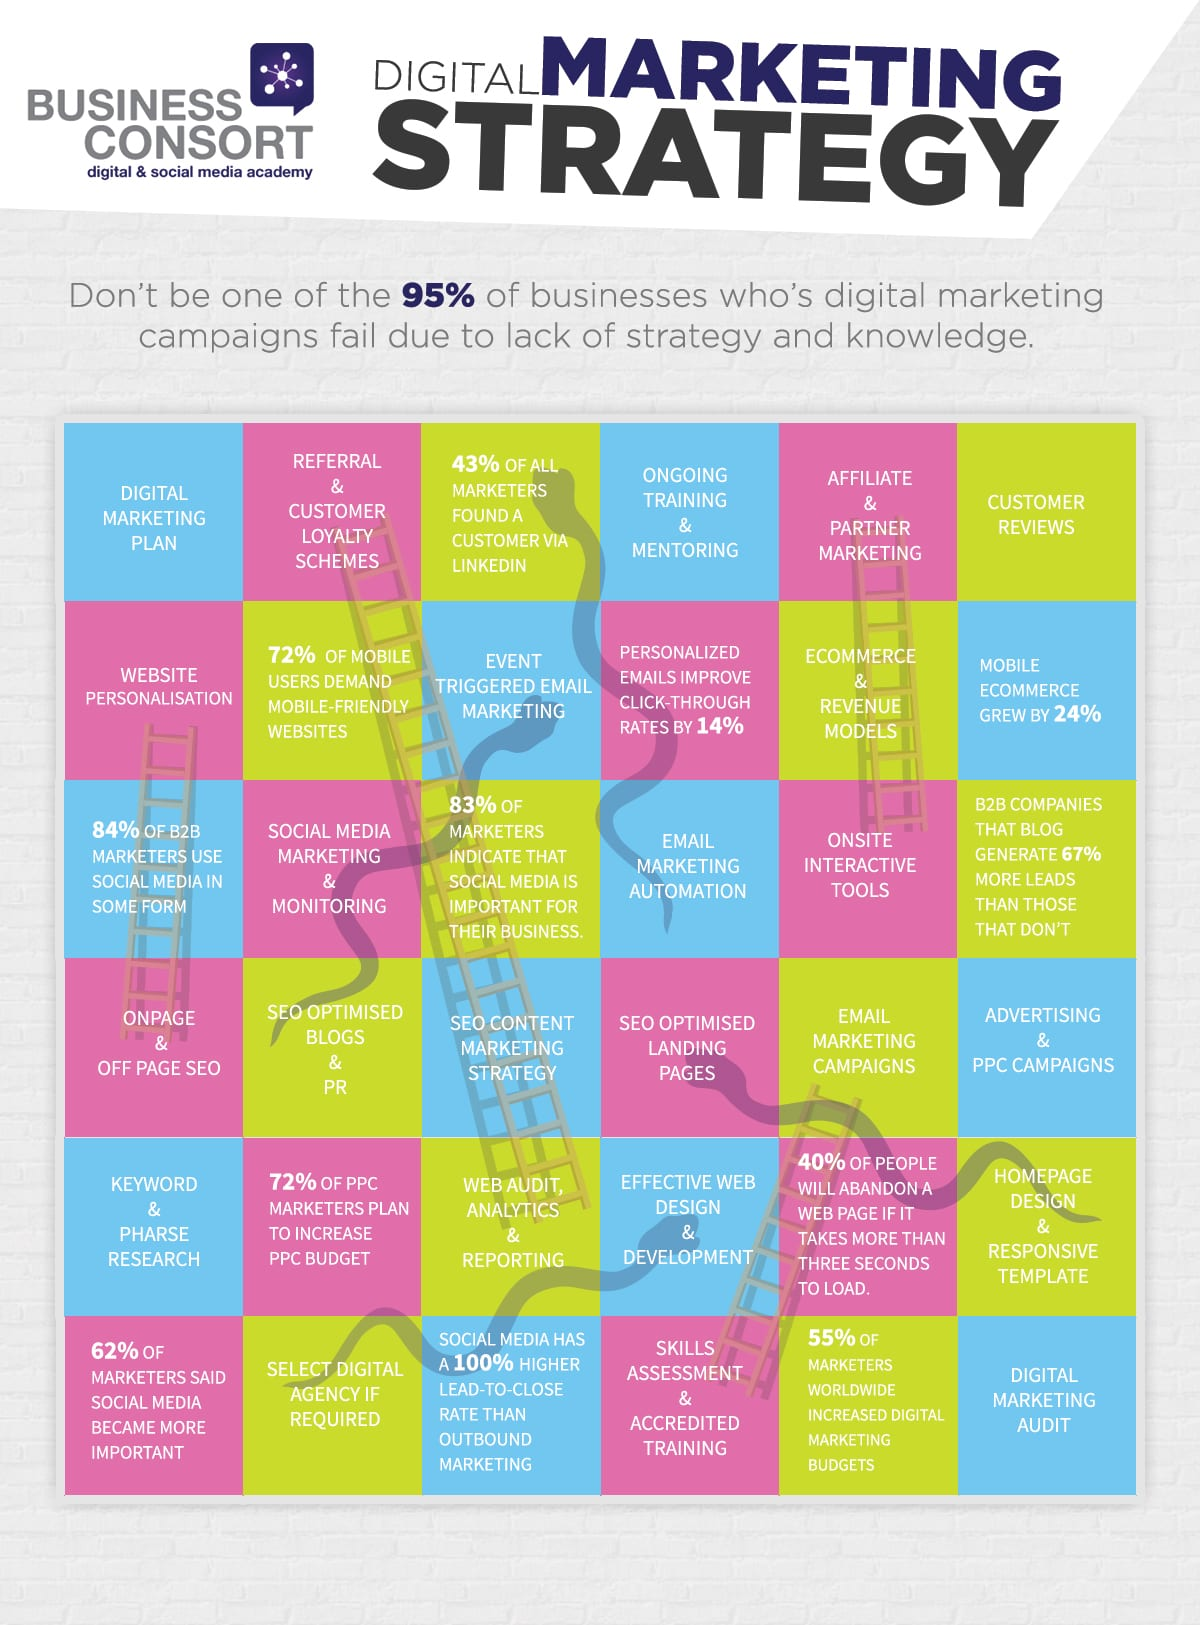 Digital Marketing Strategy Infographic - Business Consort